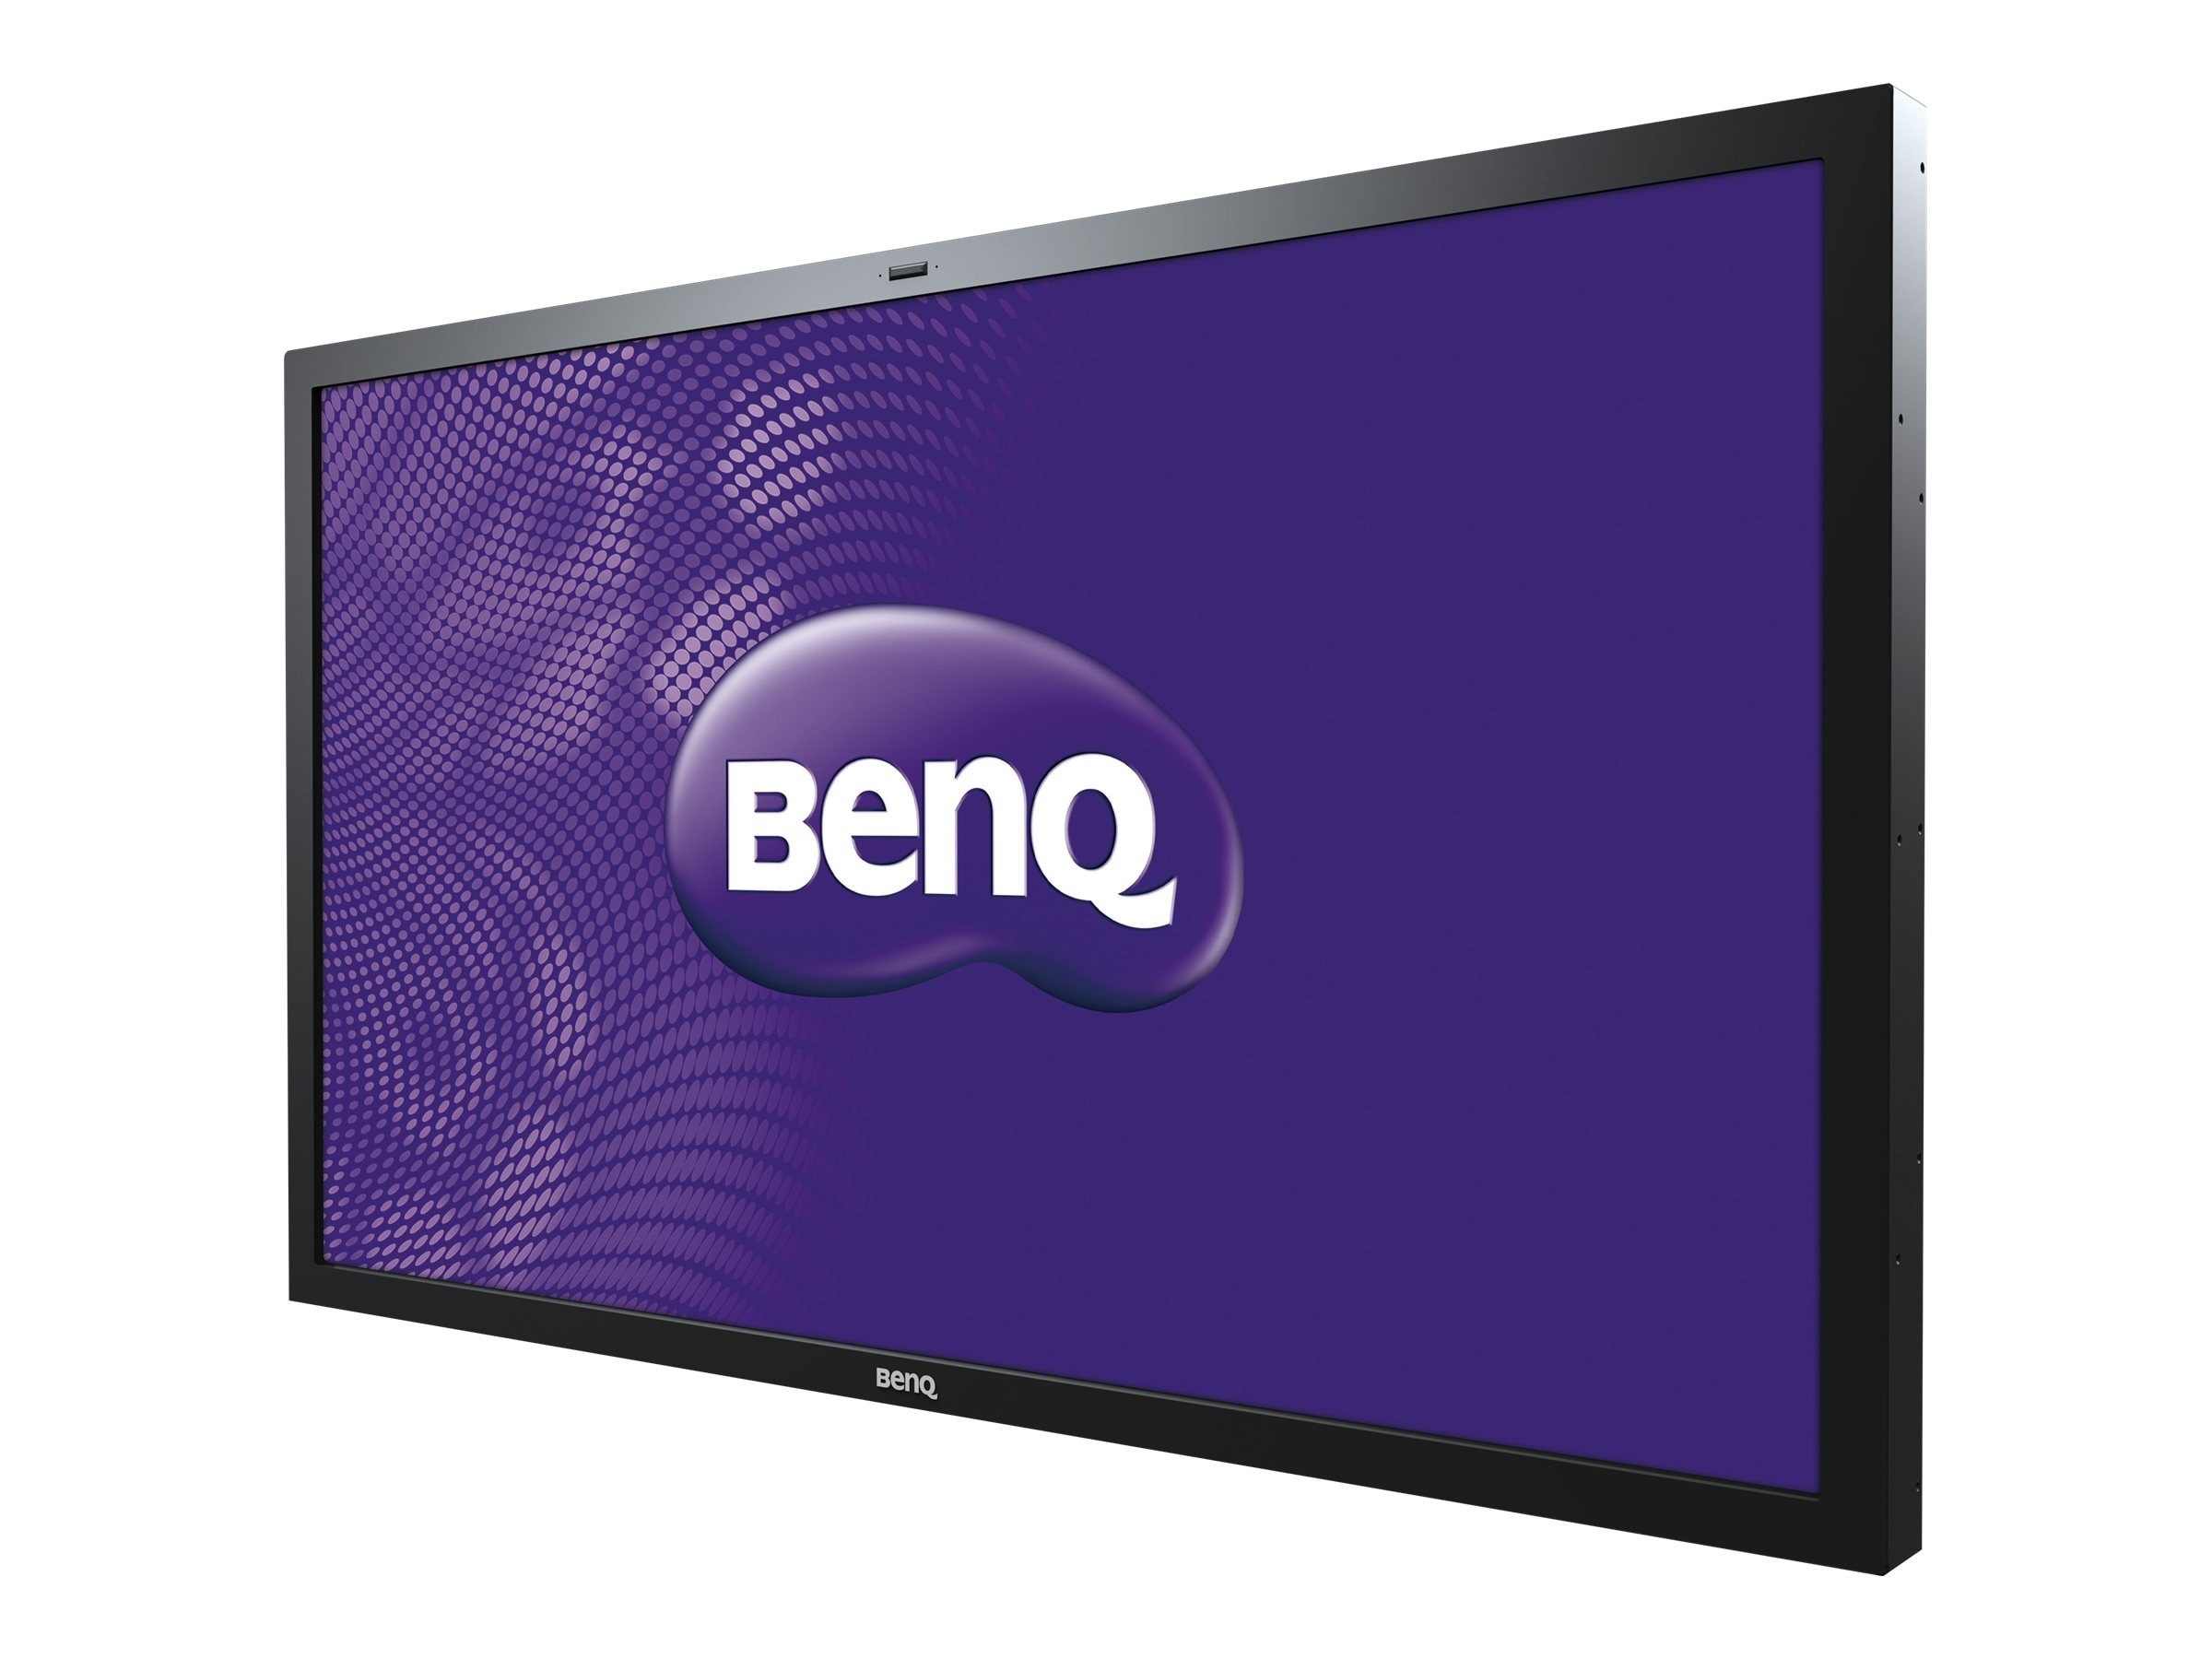 Benq 65 TL650 Full HD LED-LCD Touchscreen Monitor, Black, TL650